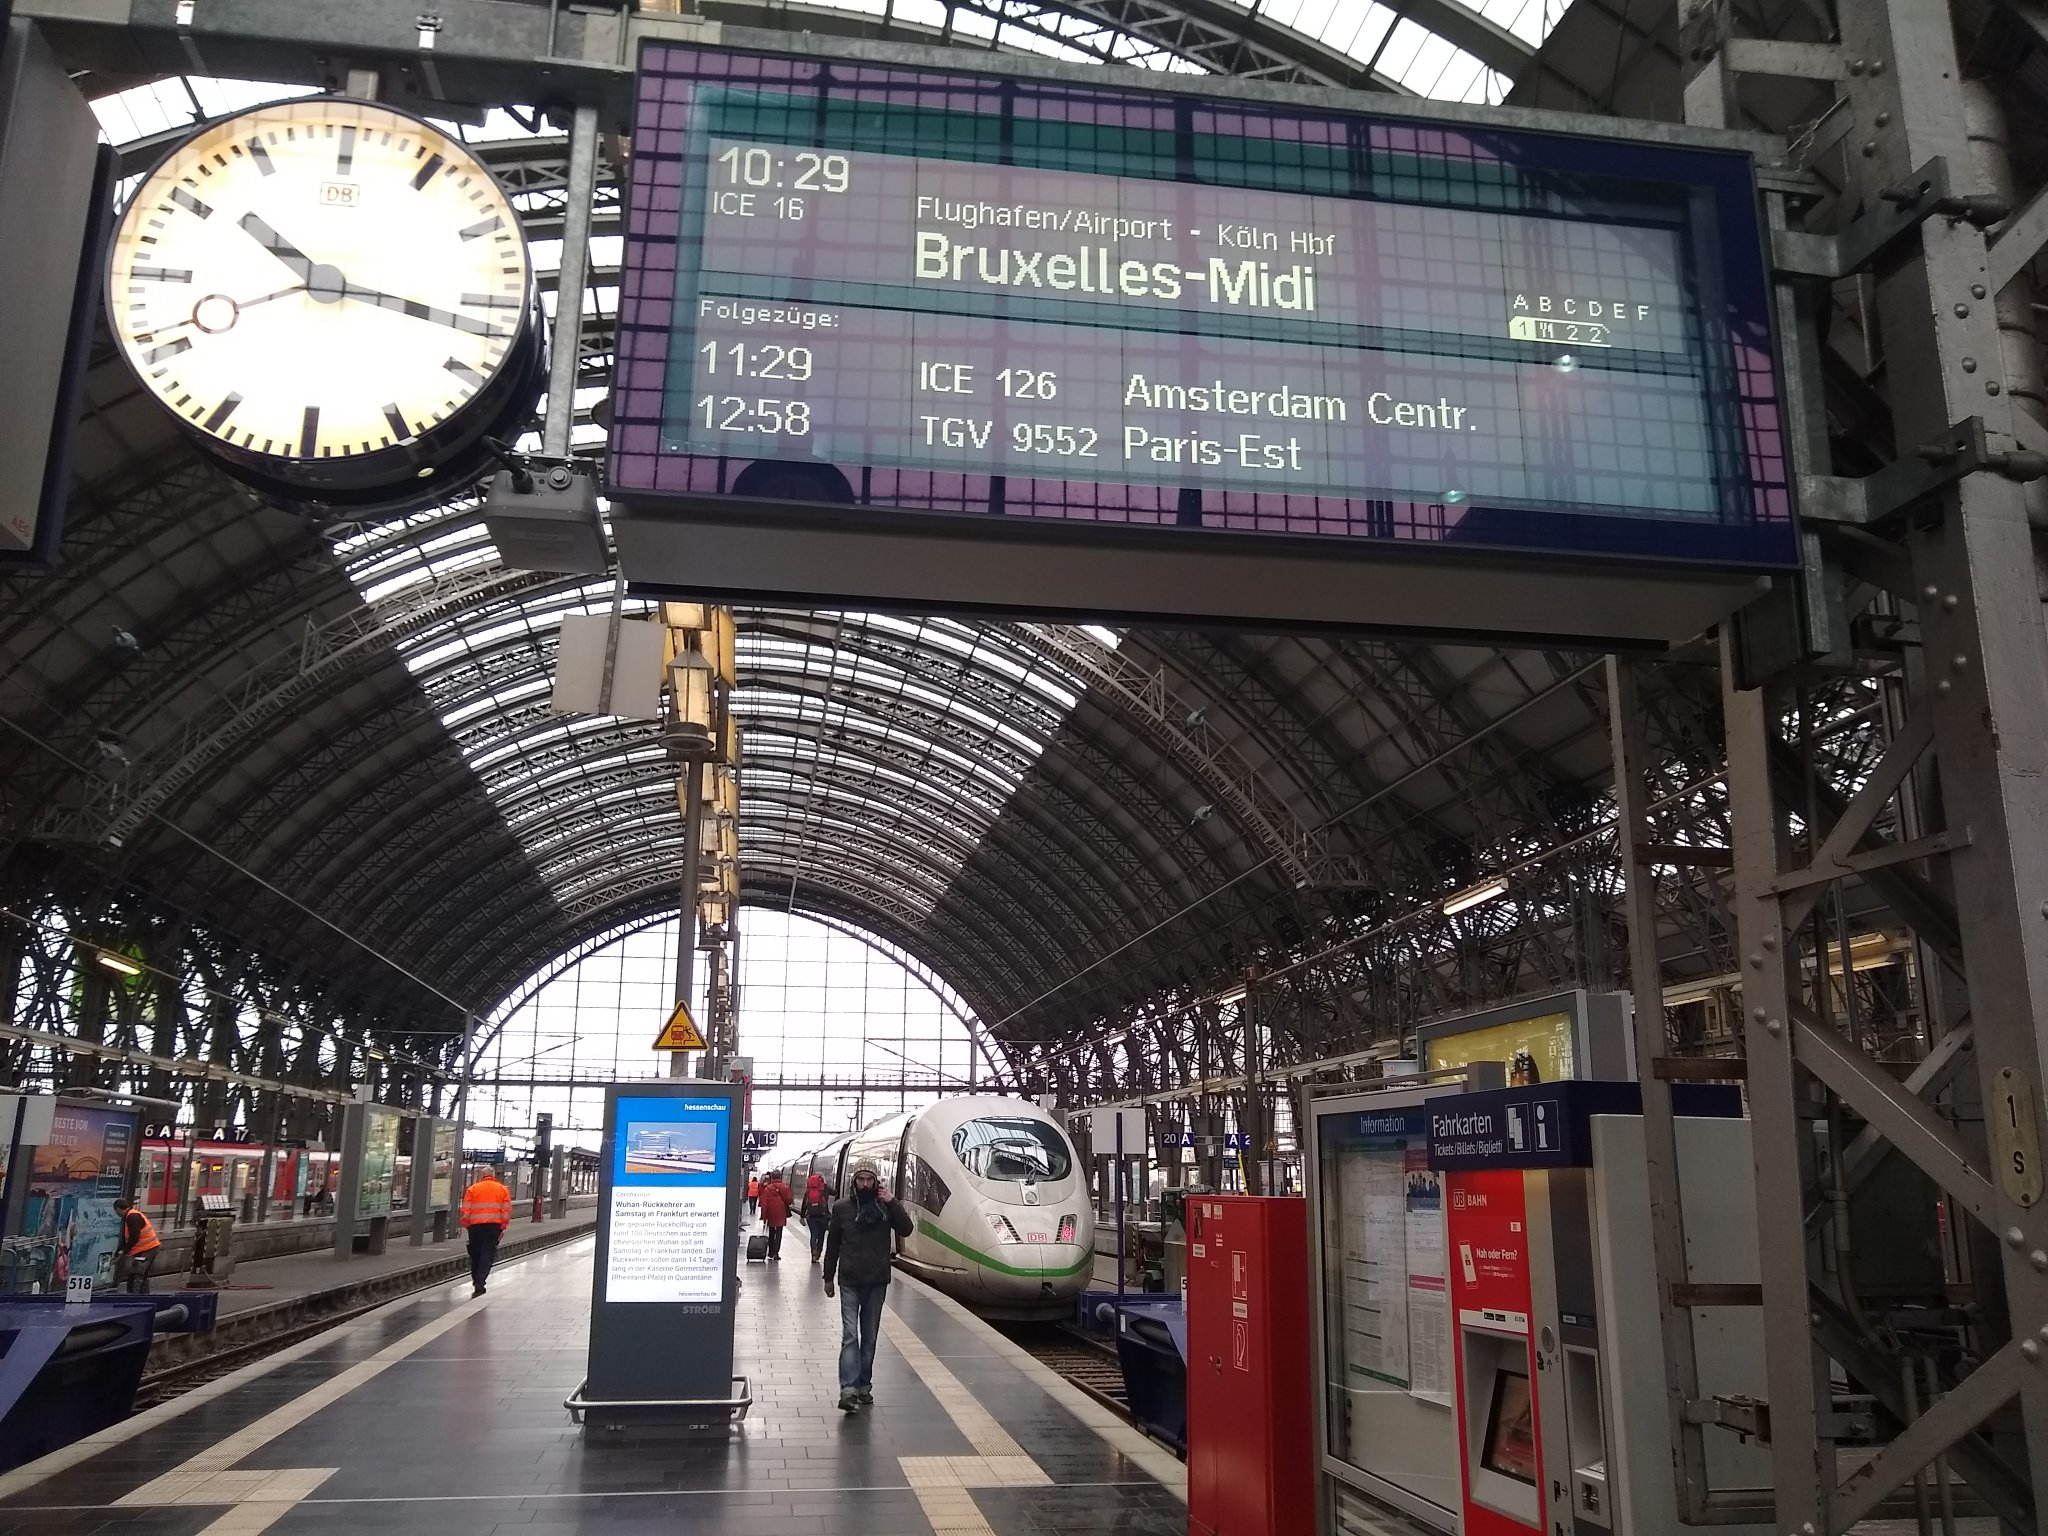 ICE 16 to Brussels waiting at platform 19